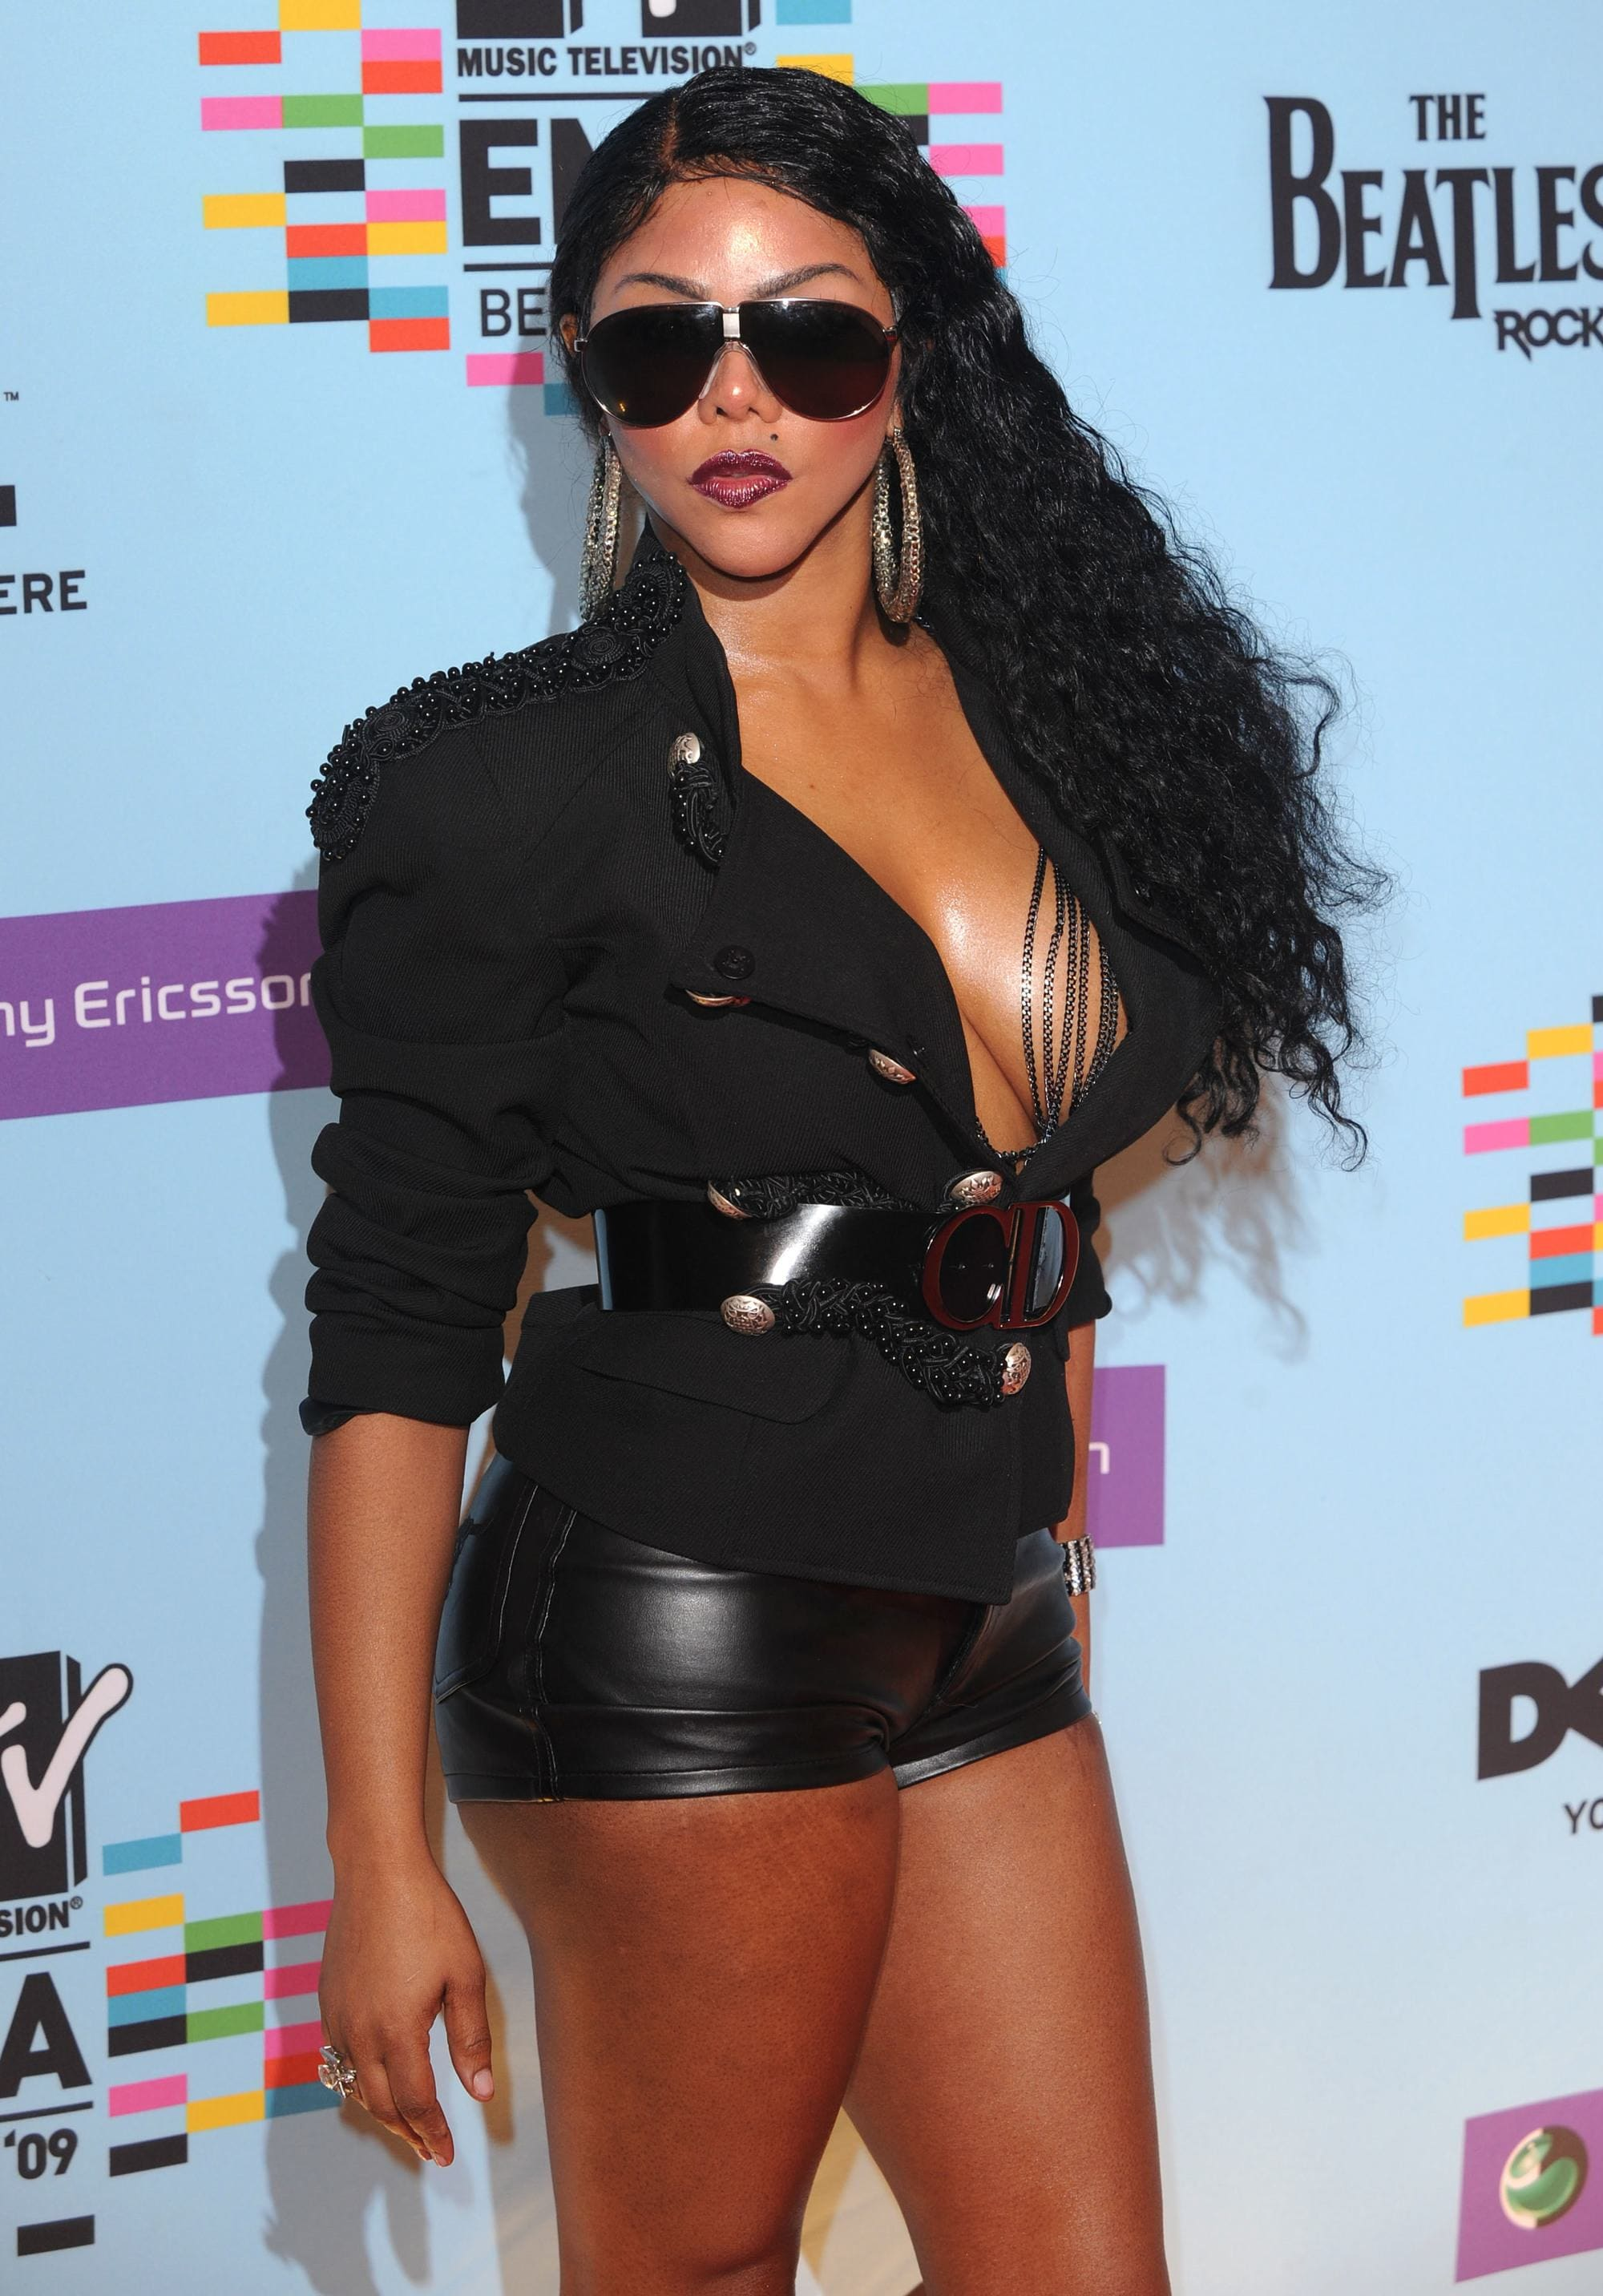 Lil Kim with long dark brown curly hair